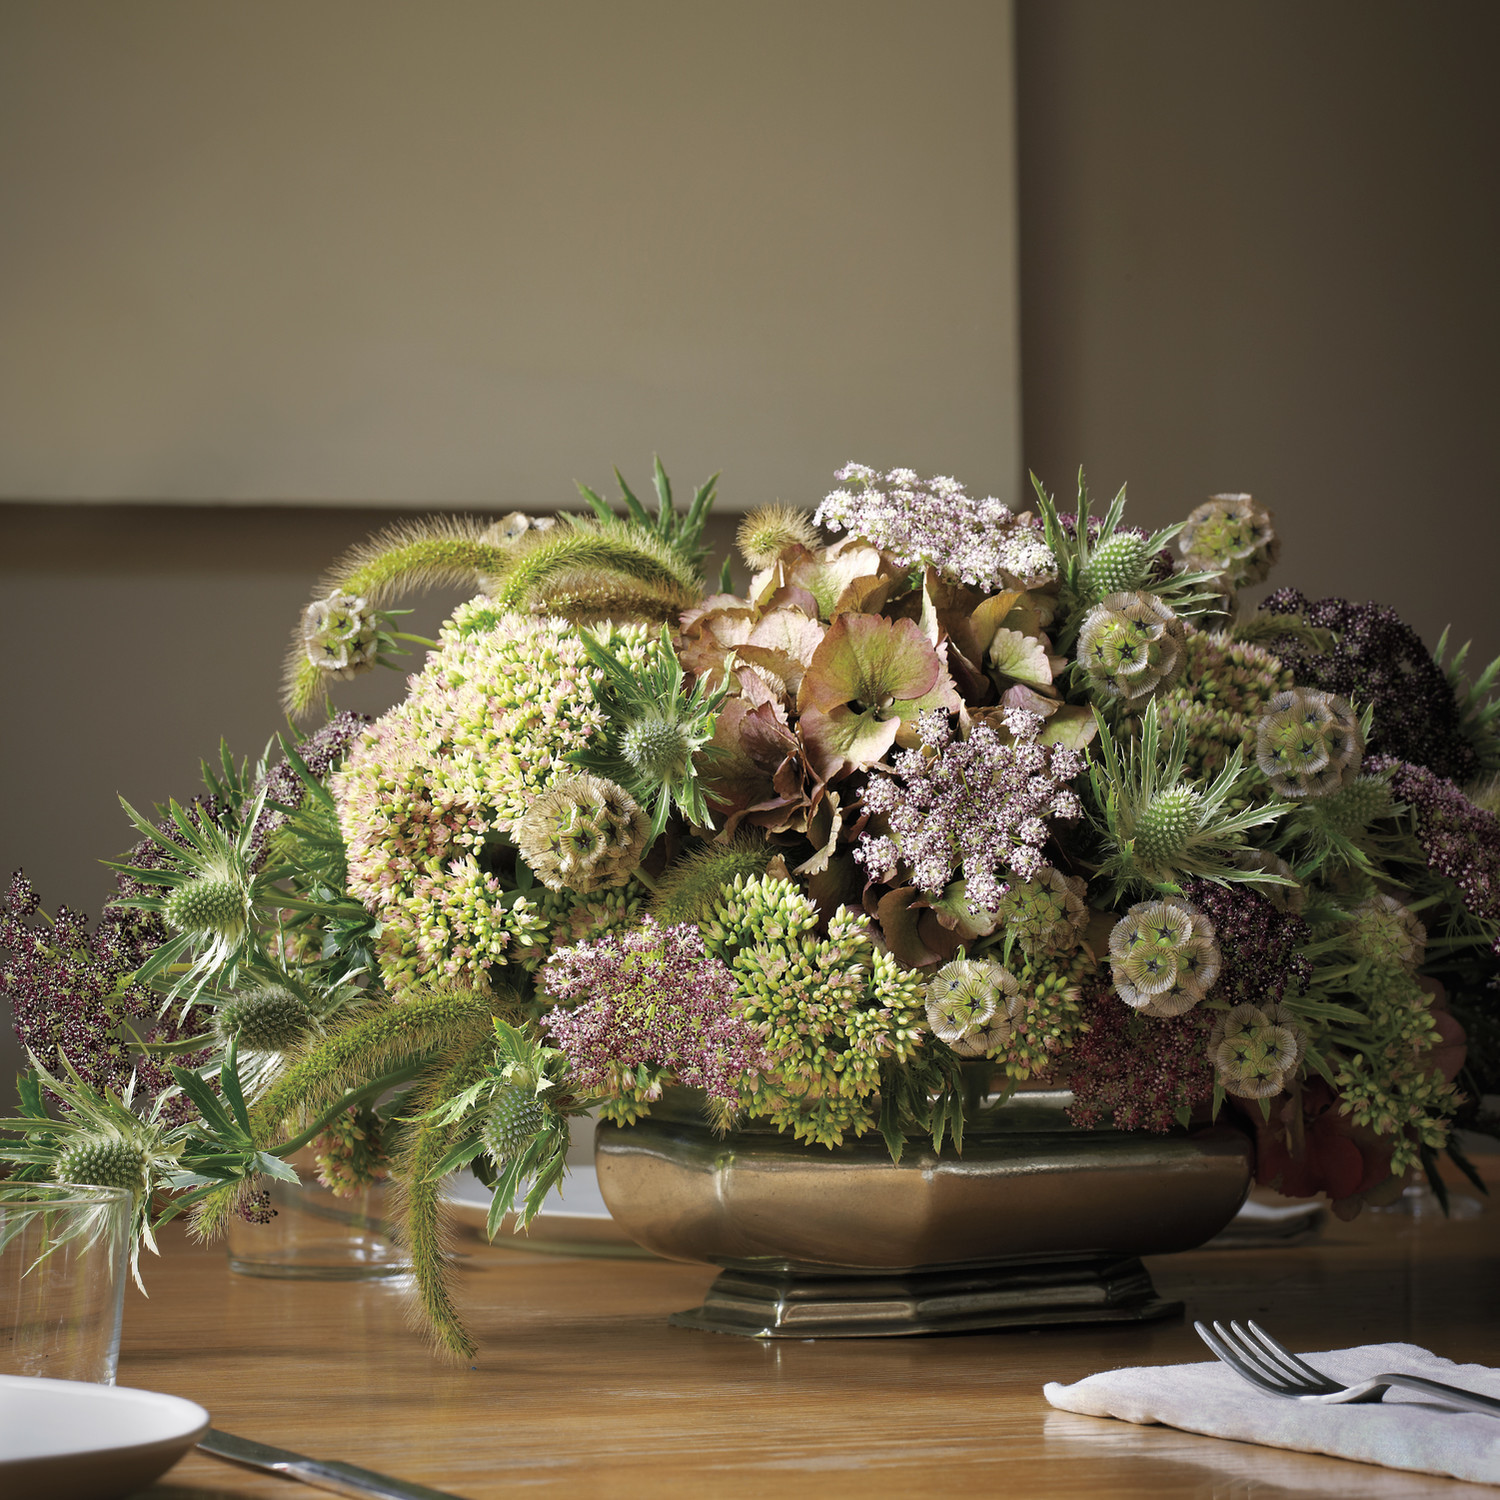 tall skinny vases for centerpieces of 27 fabulous fall centerpieces martha stewart for centerpiecedetail 012 r md109322 sq